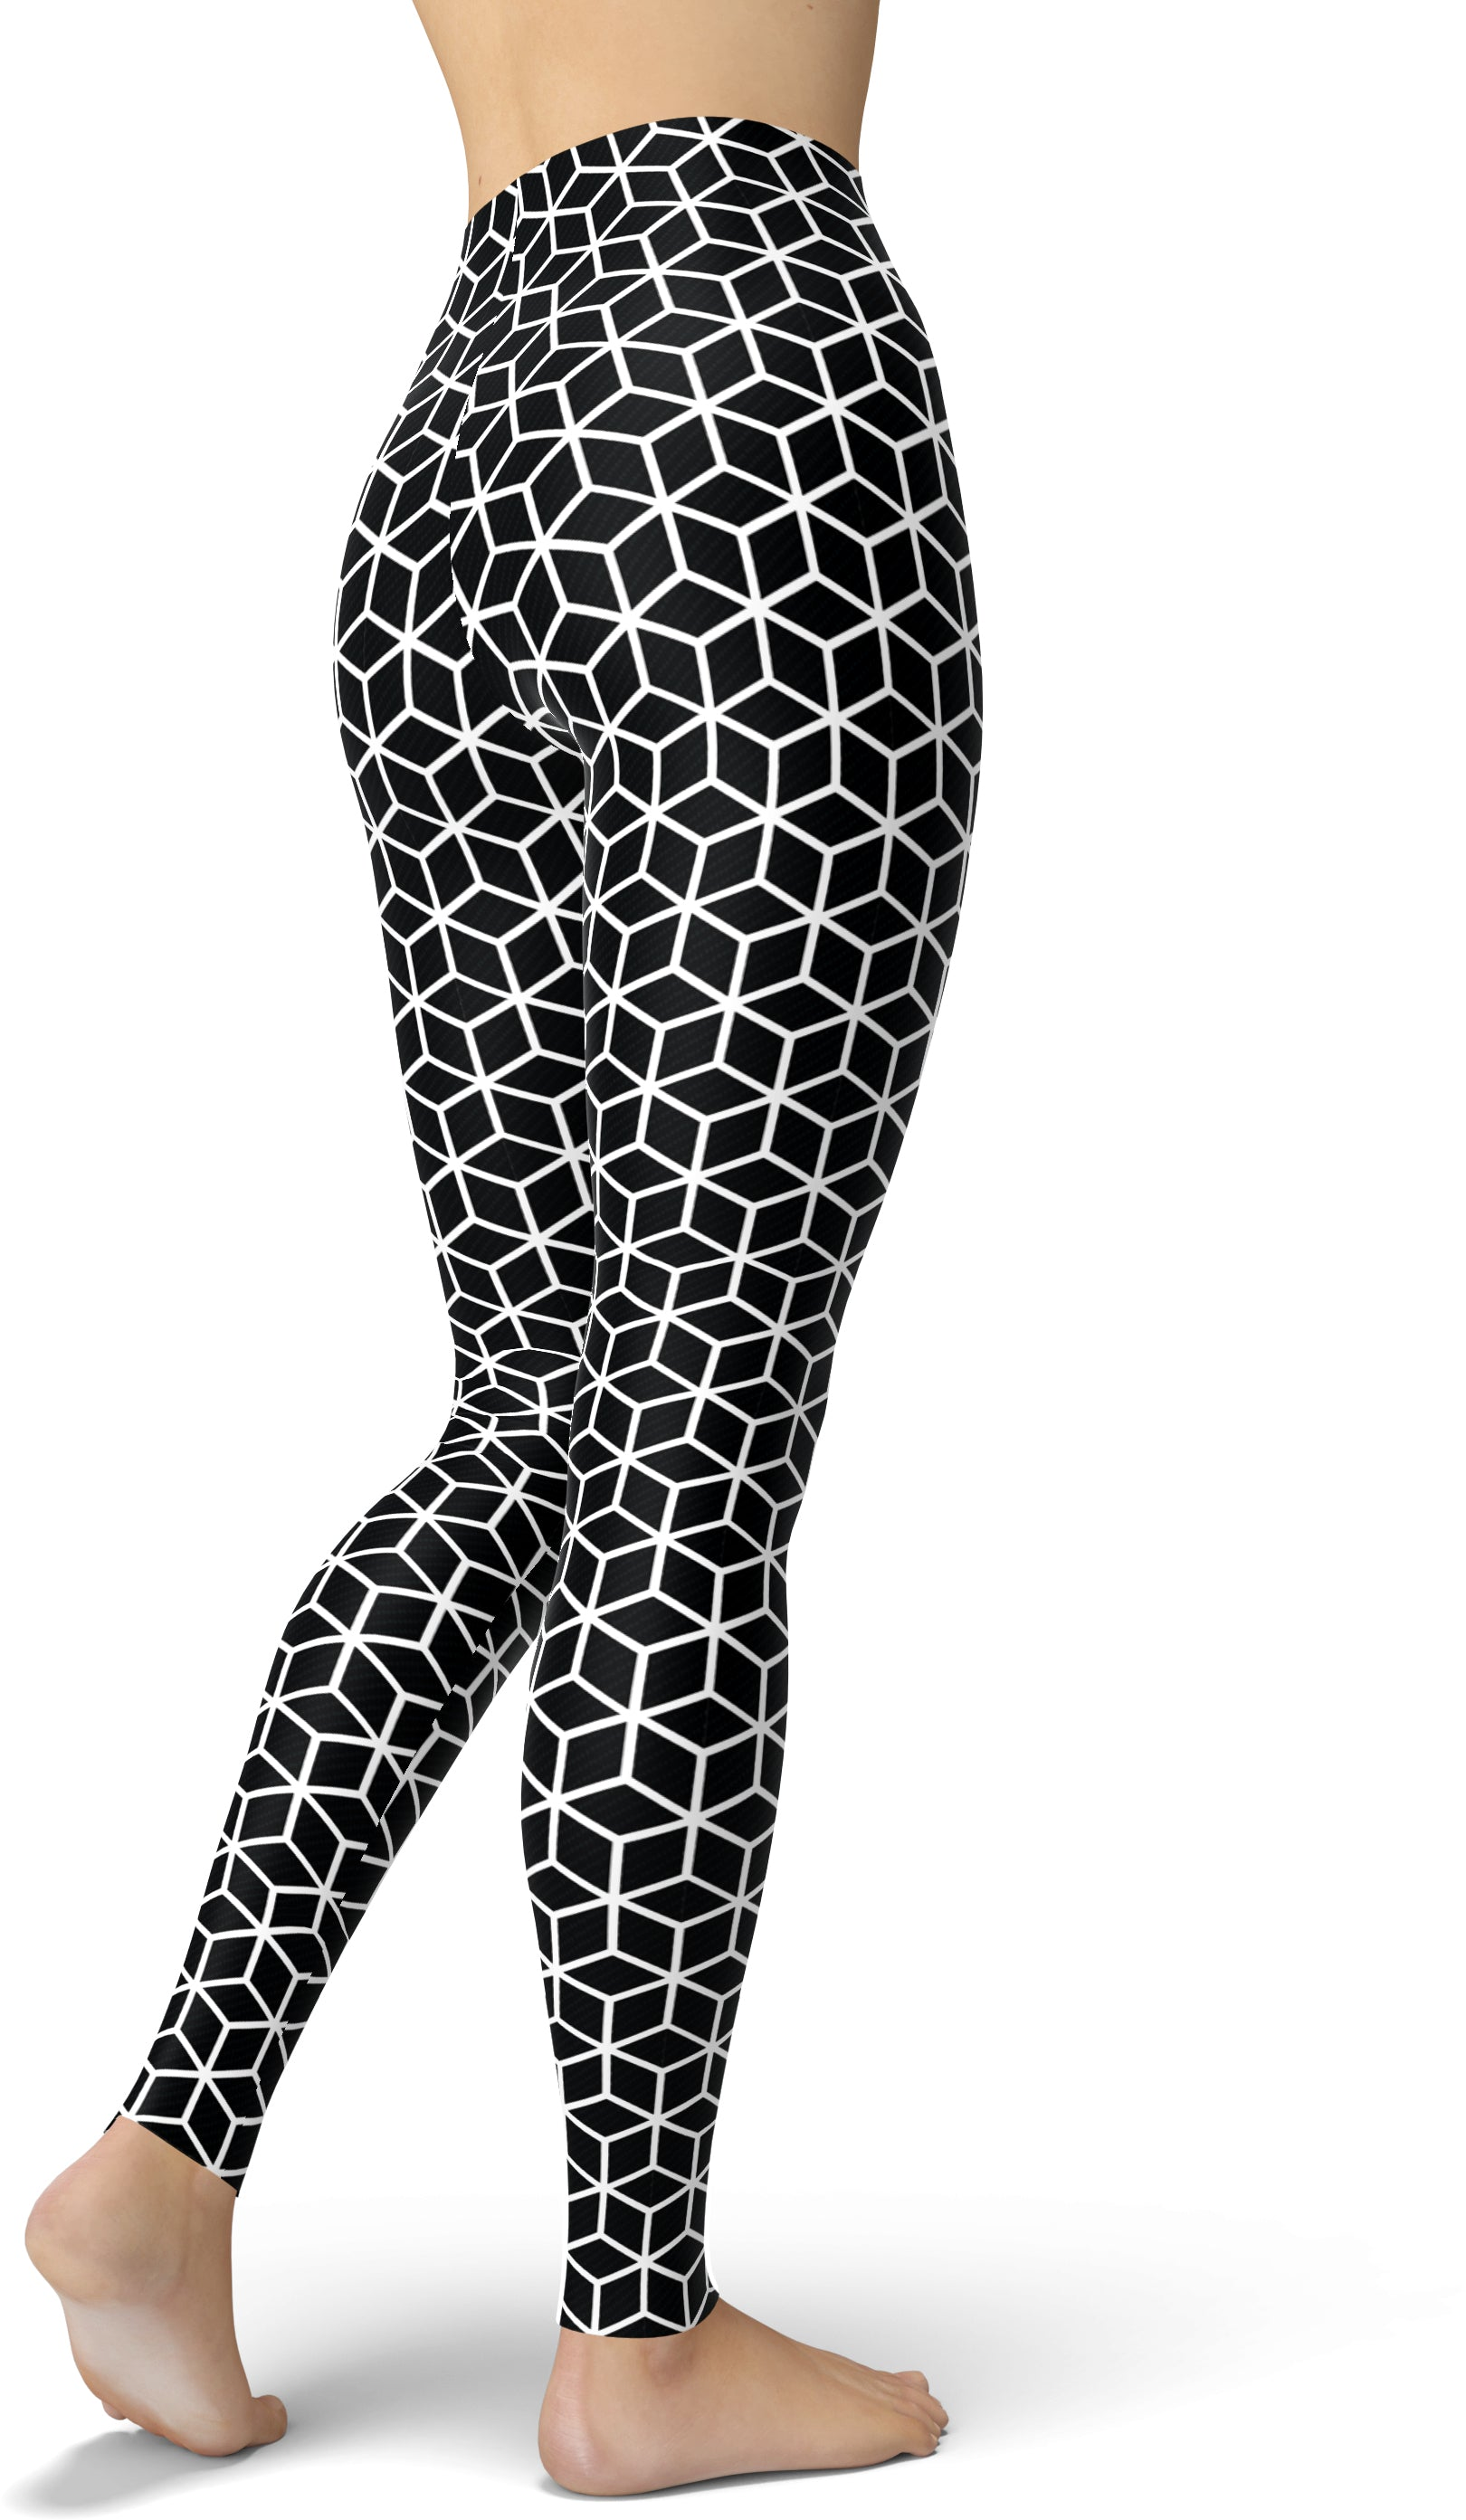 Black & White Hexagons Leggings